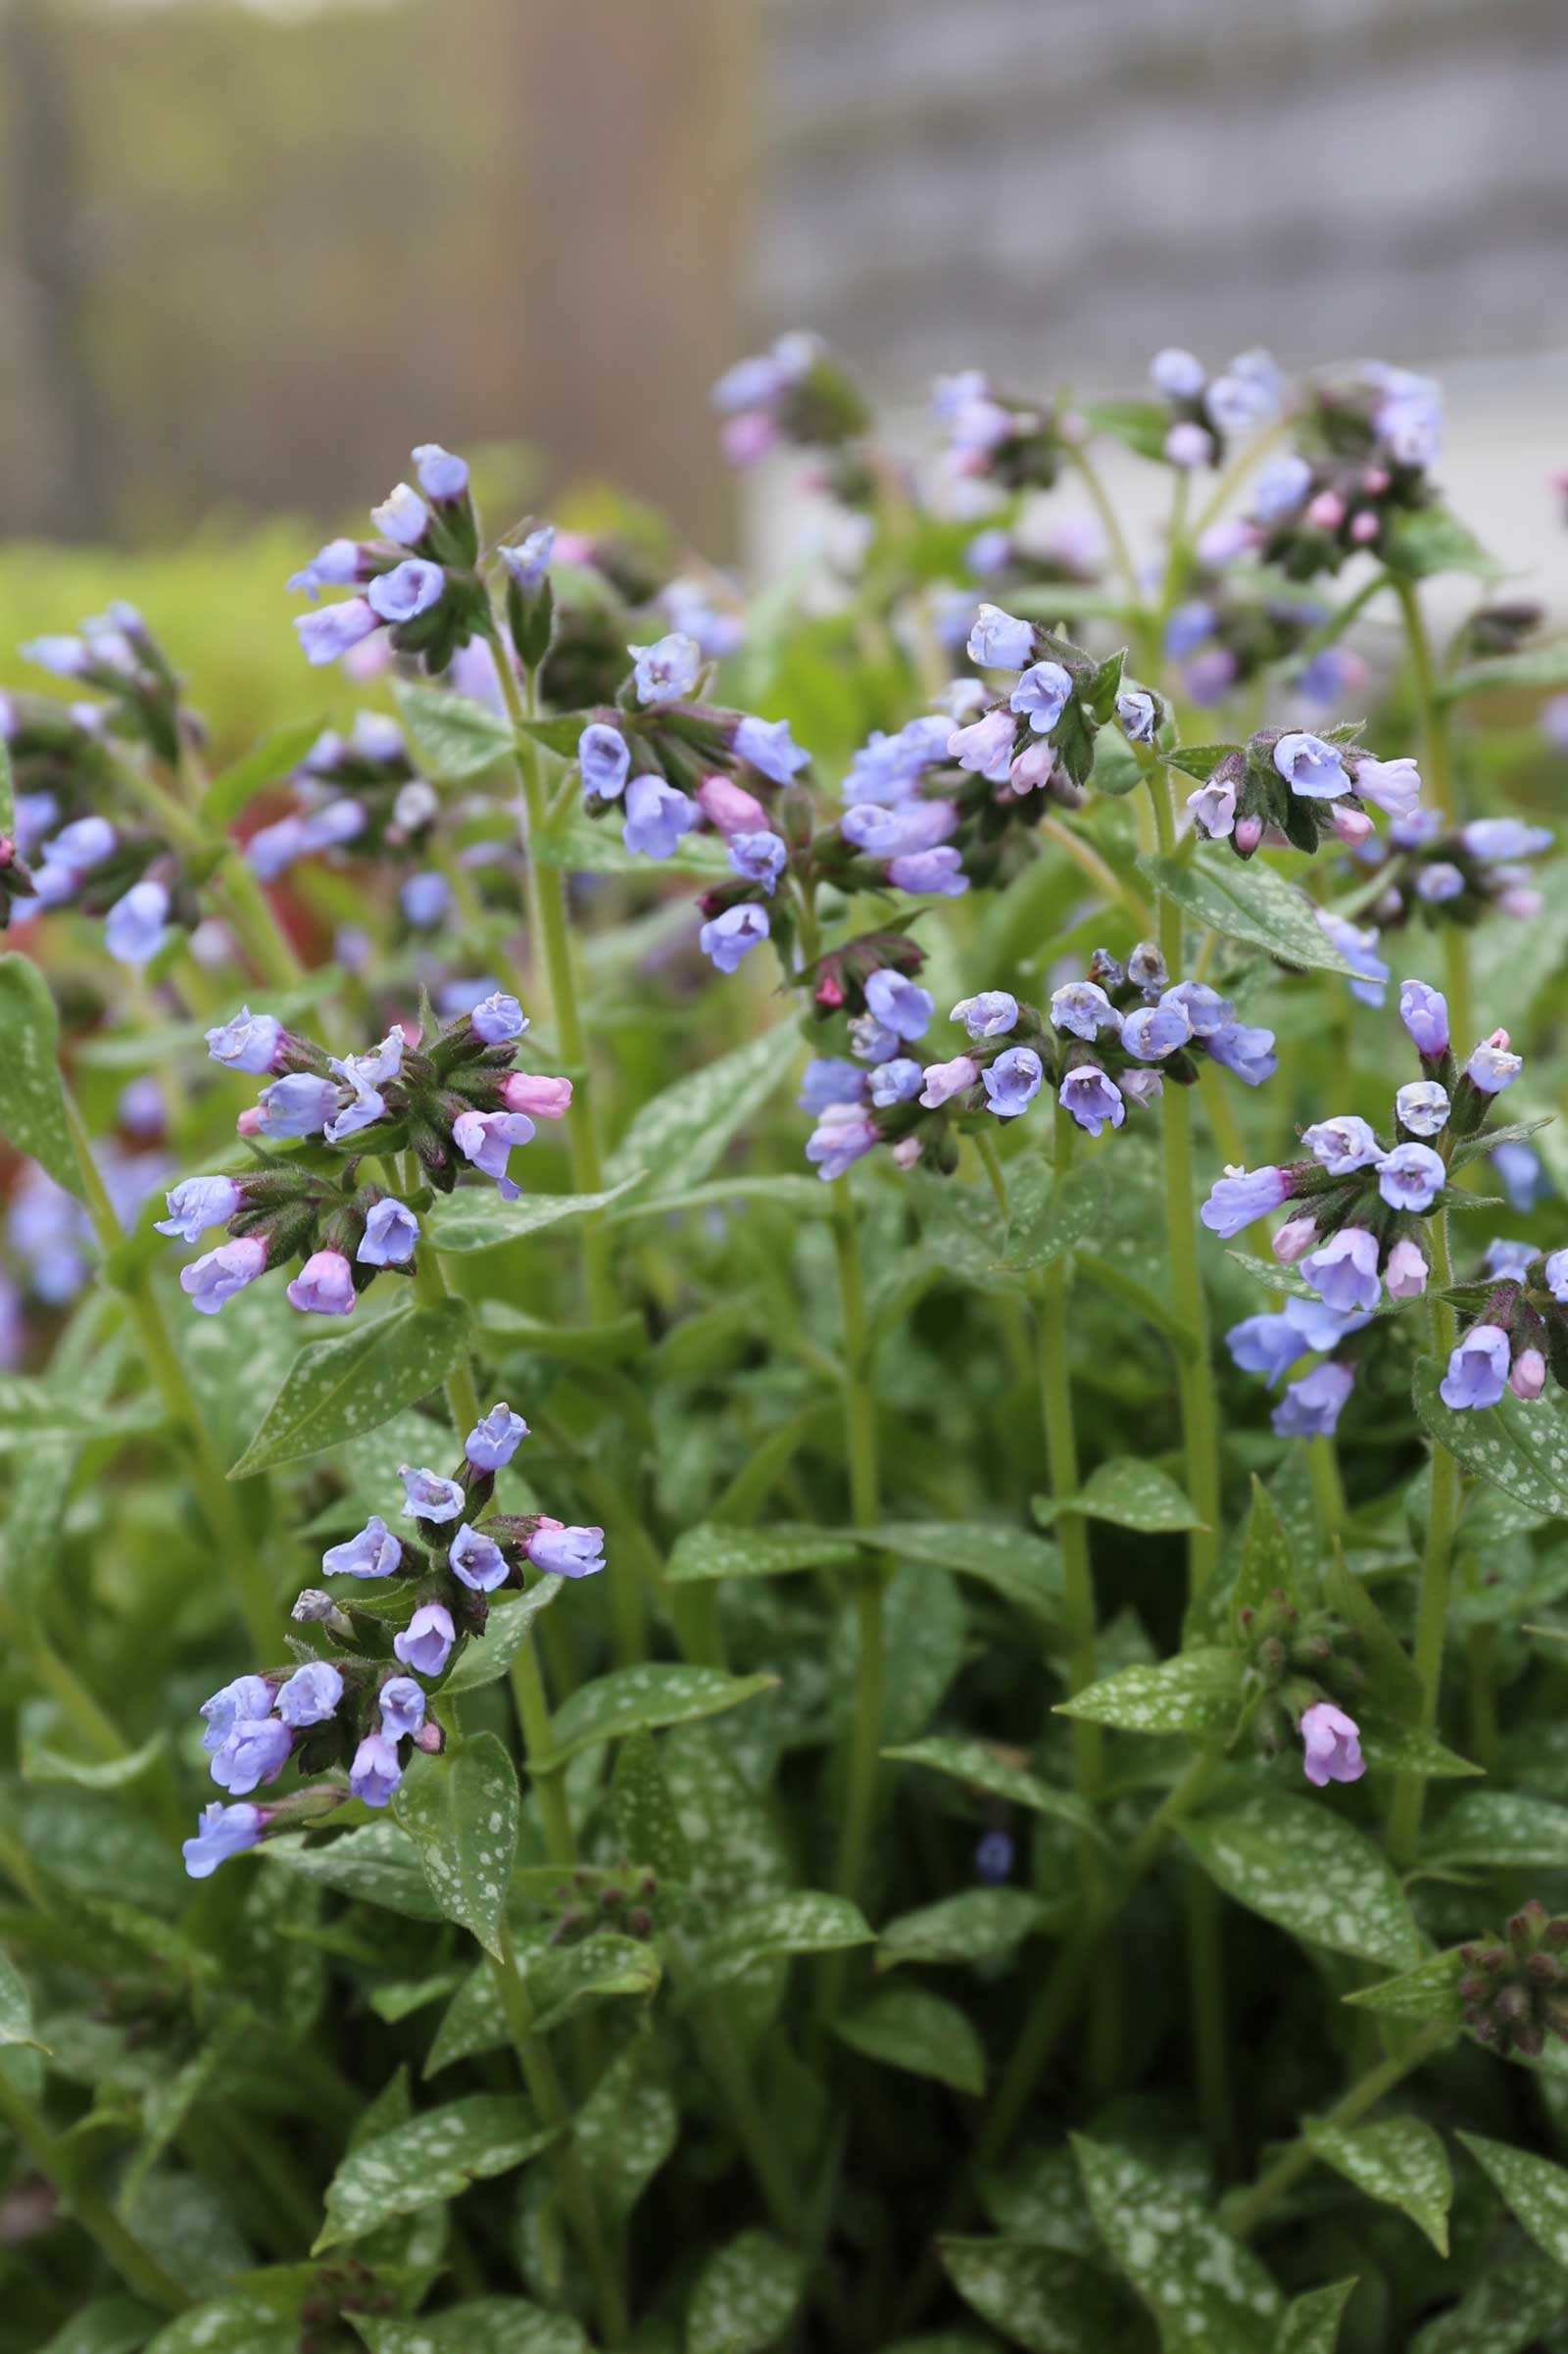 Pulmonaria-Best-Companion-Plants-for-Hostas—Longfield-Gardens